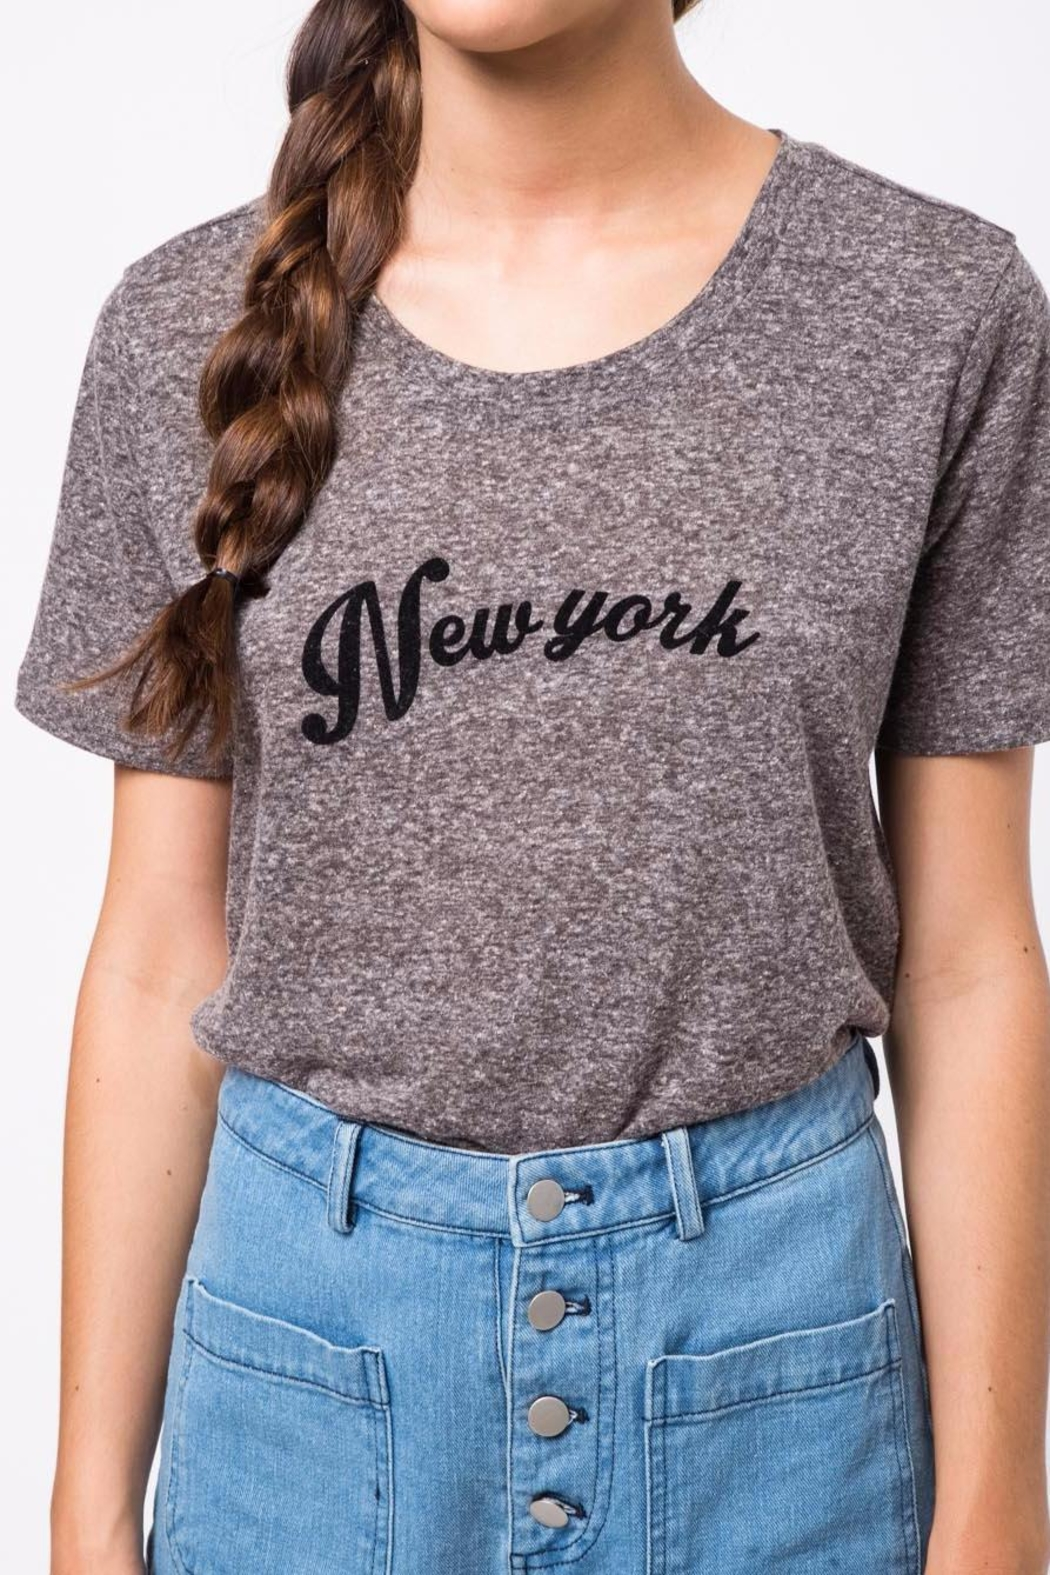 Movint New York Printed T-Shirt - Back Cropped Image